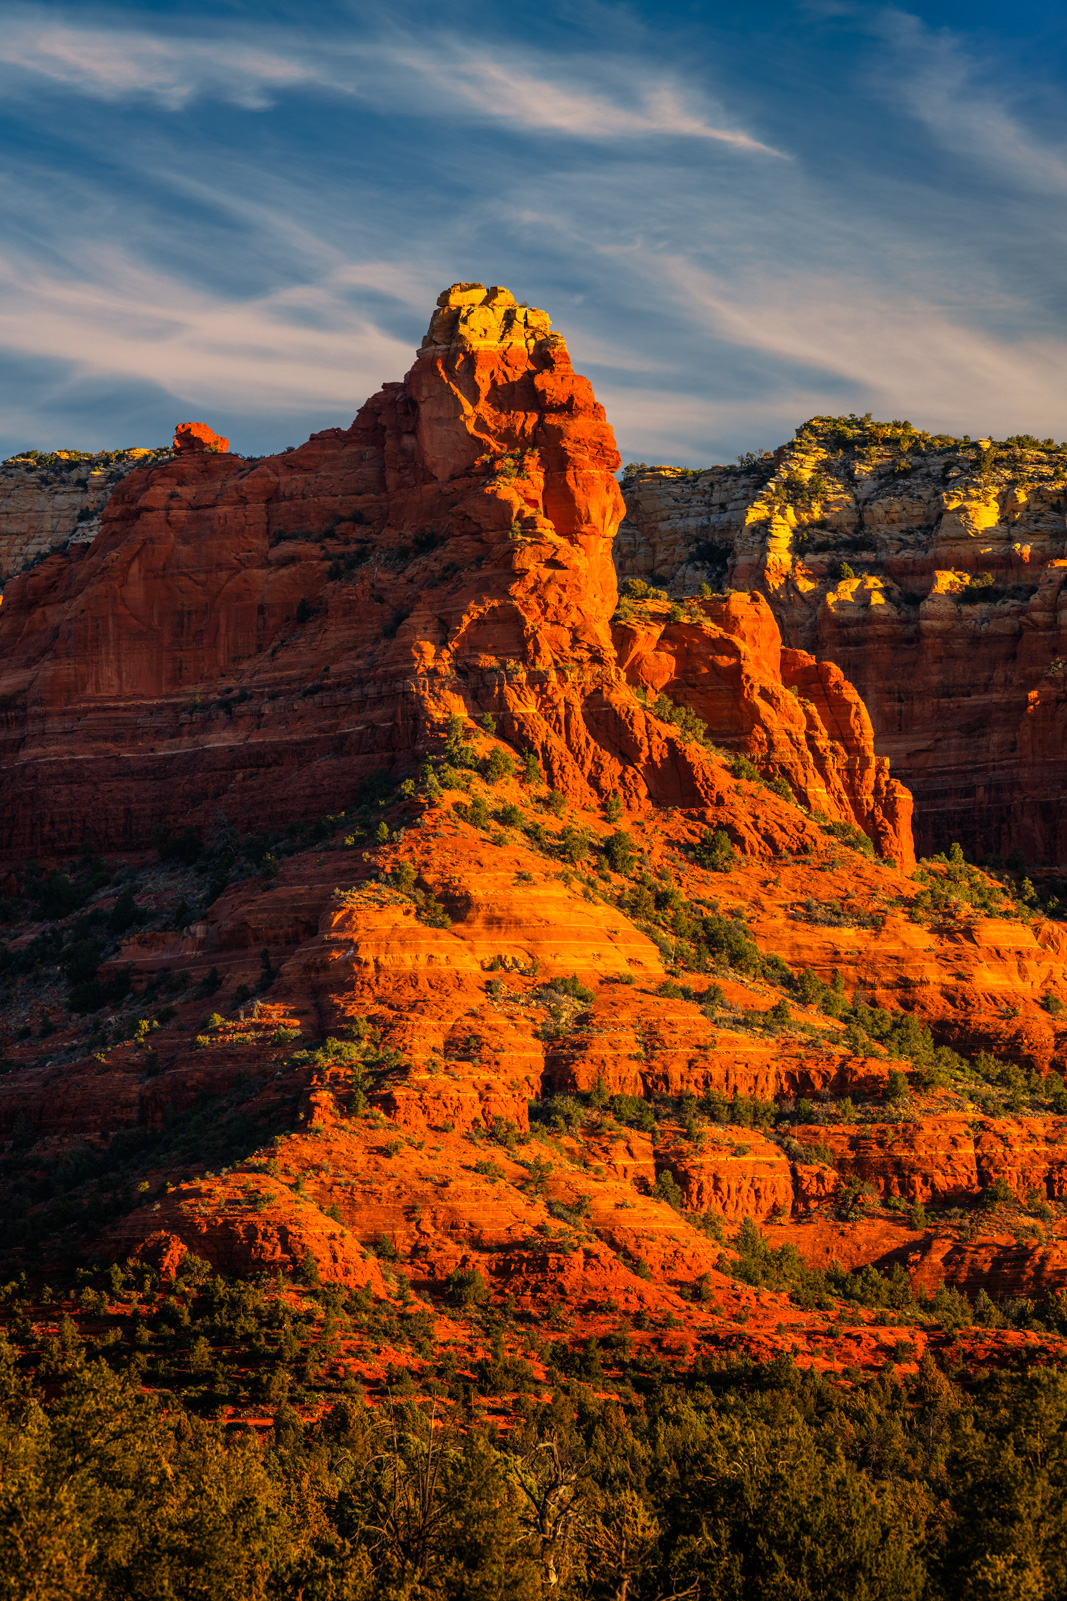 Arizona, Sedona, Red Rock, Shadows, Clouds, Sun, Rising, limited edition, photograph, fine art, landscape, photo